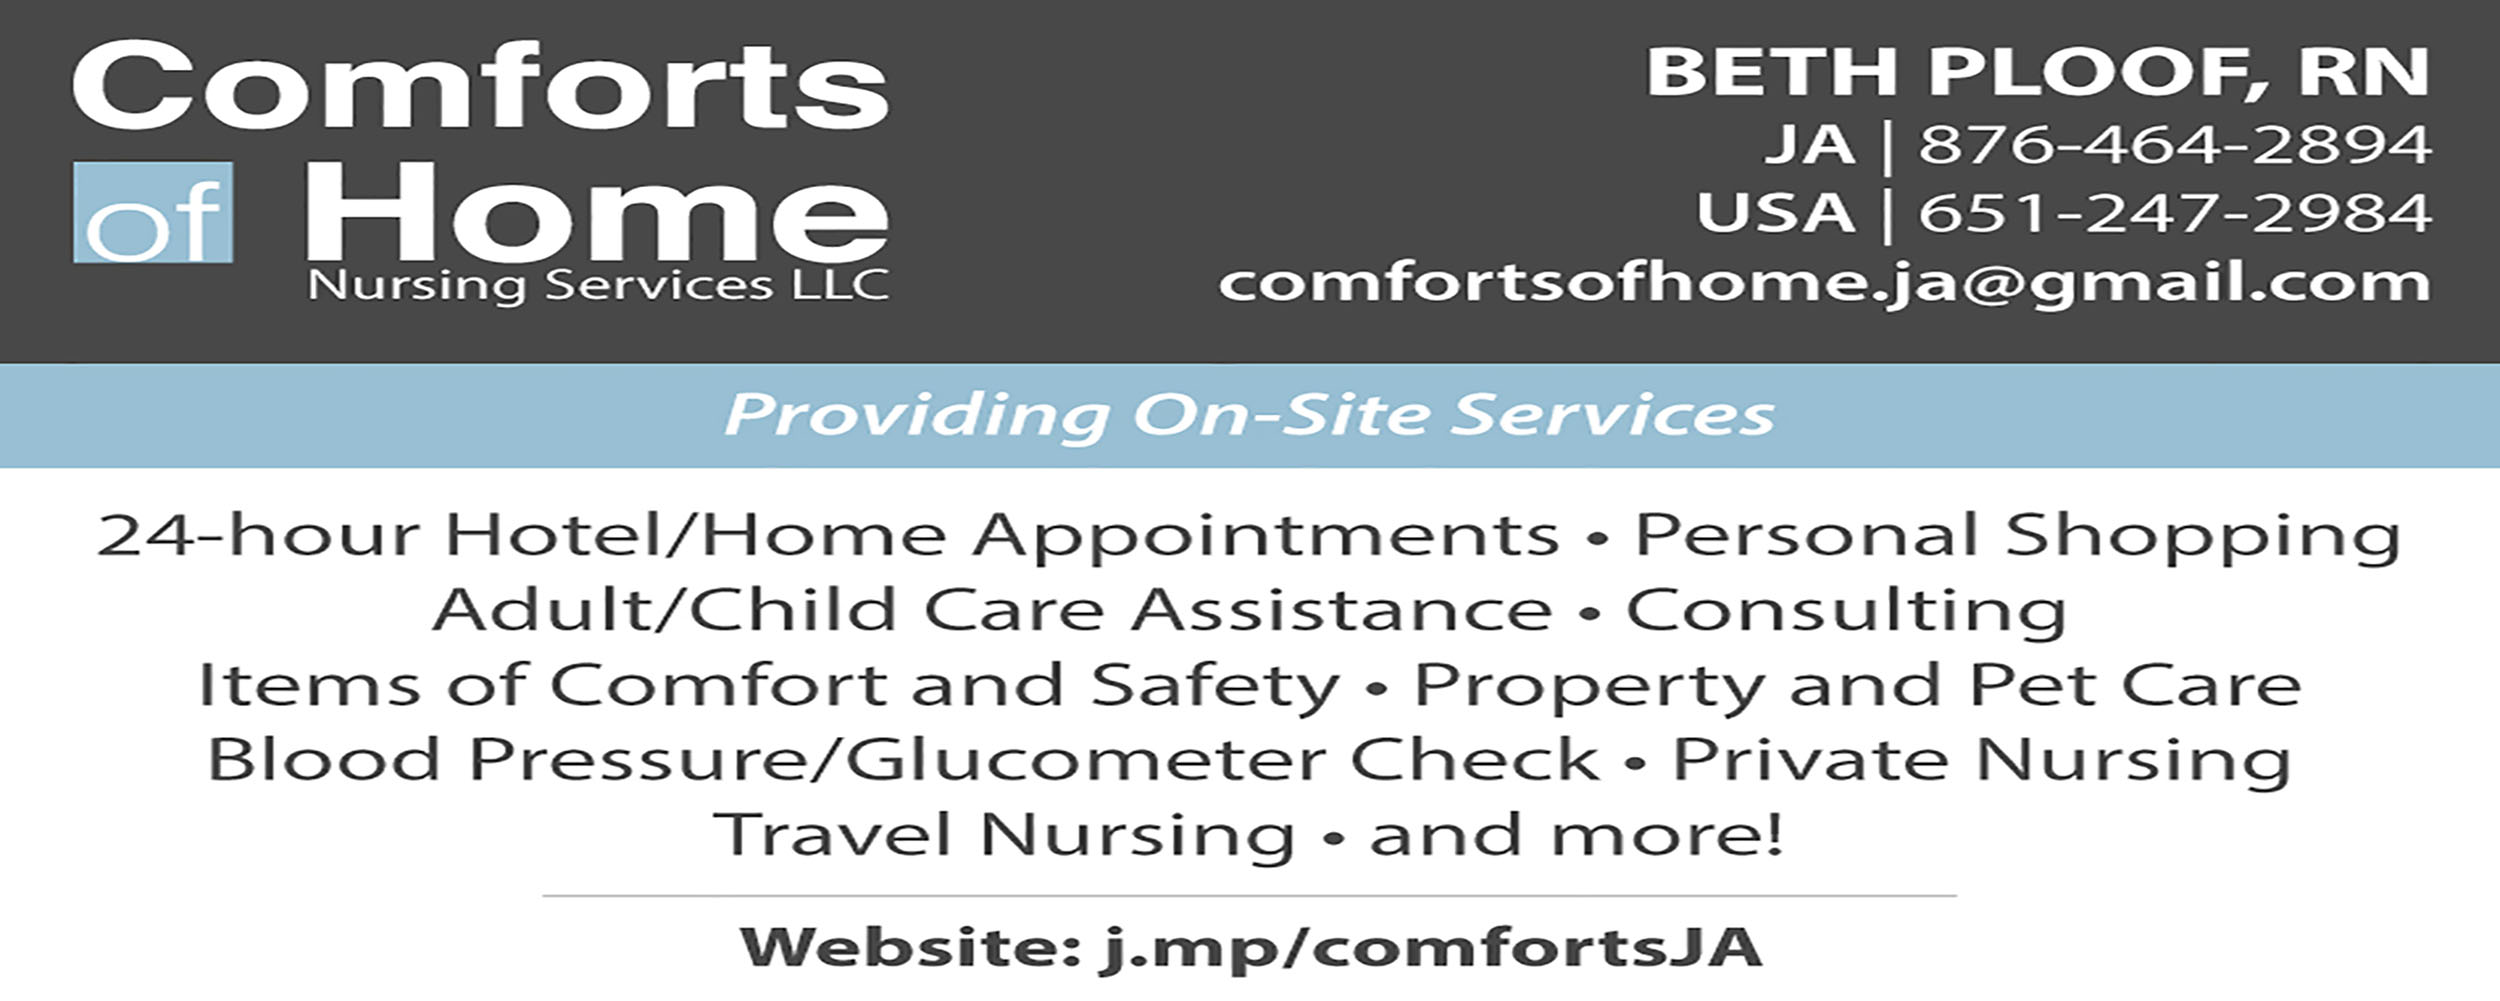 Comforts Of Home Nursing Services - West End Road - Negril Jamaica